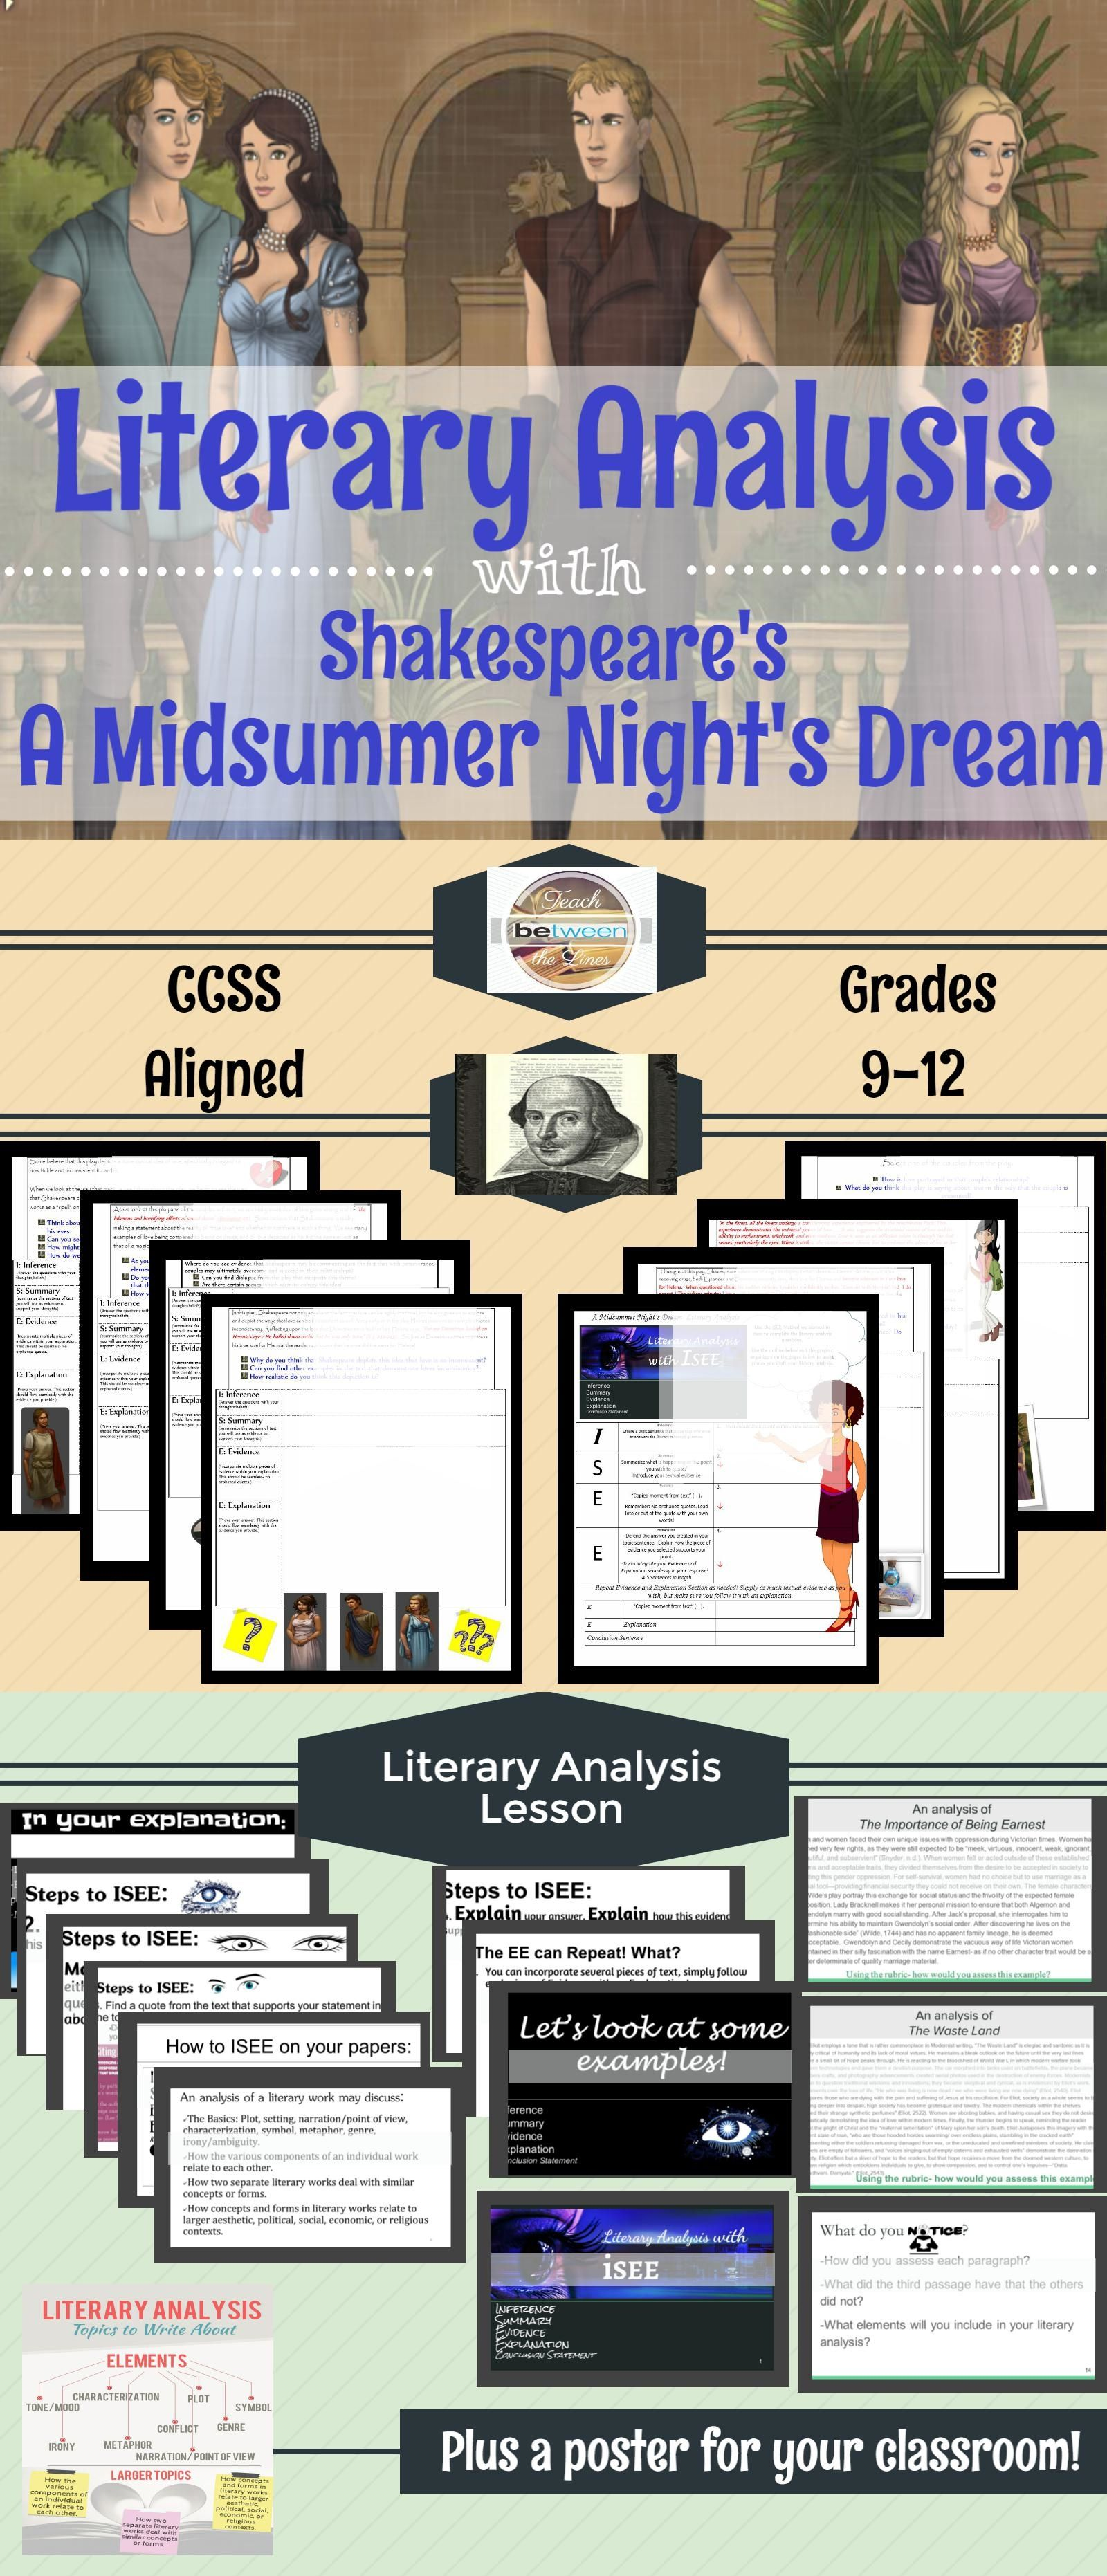 Teach Student The Art Of Literary Analysi With Shakespeare S Drama Filled Play A Midsummer Night Dream School Essay Teaching Hamlet To Be Or Not Soliloquy